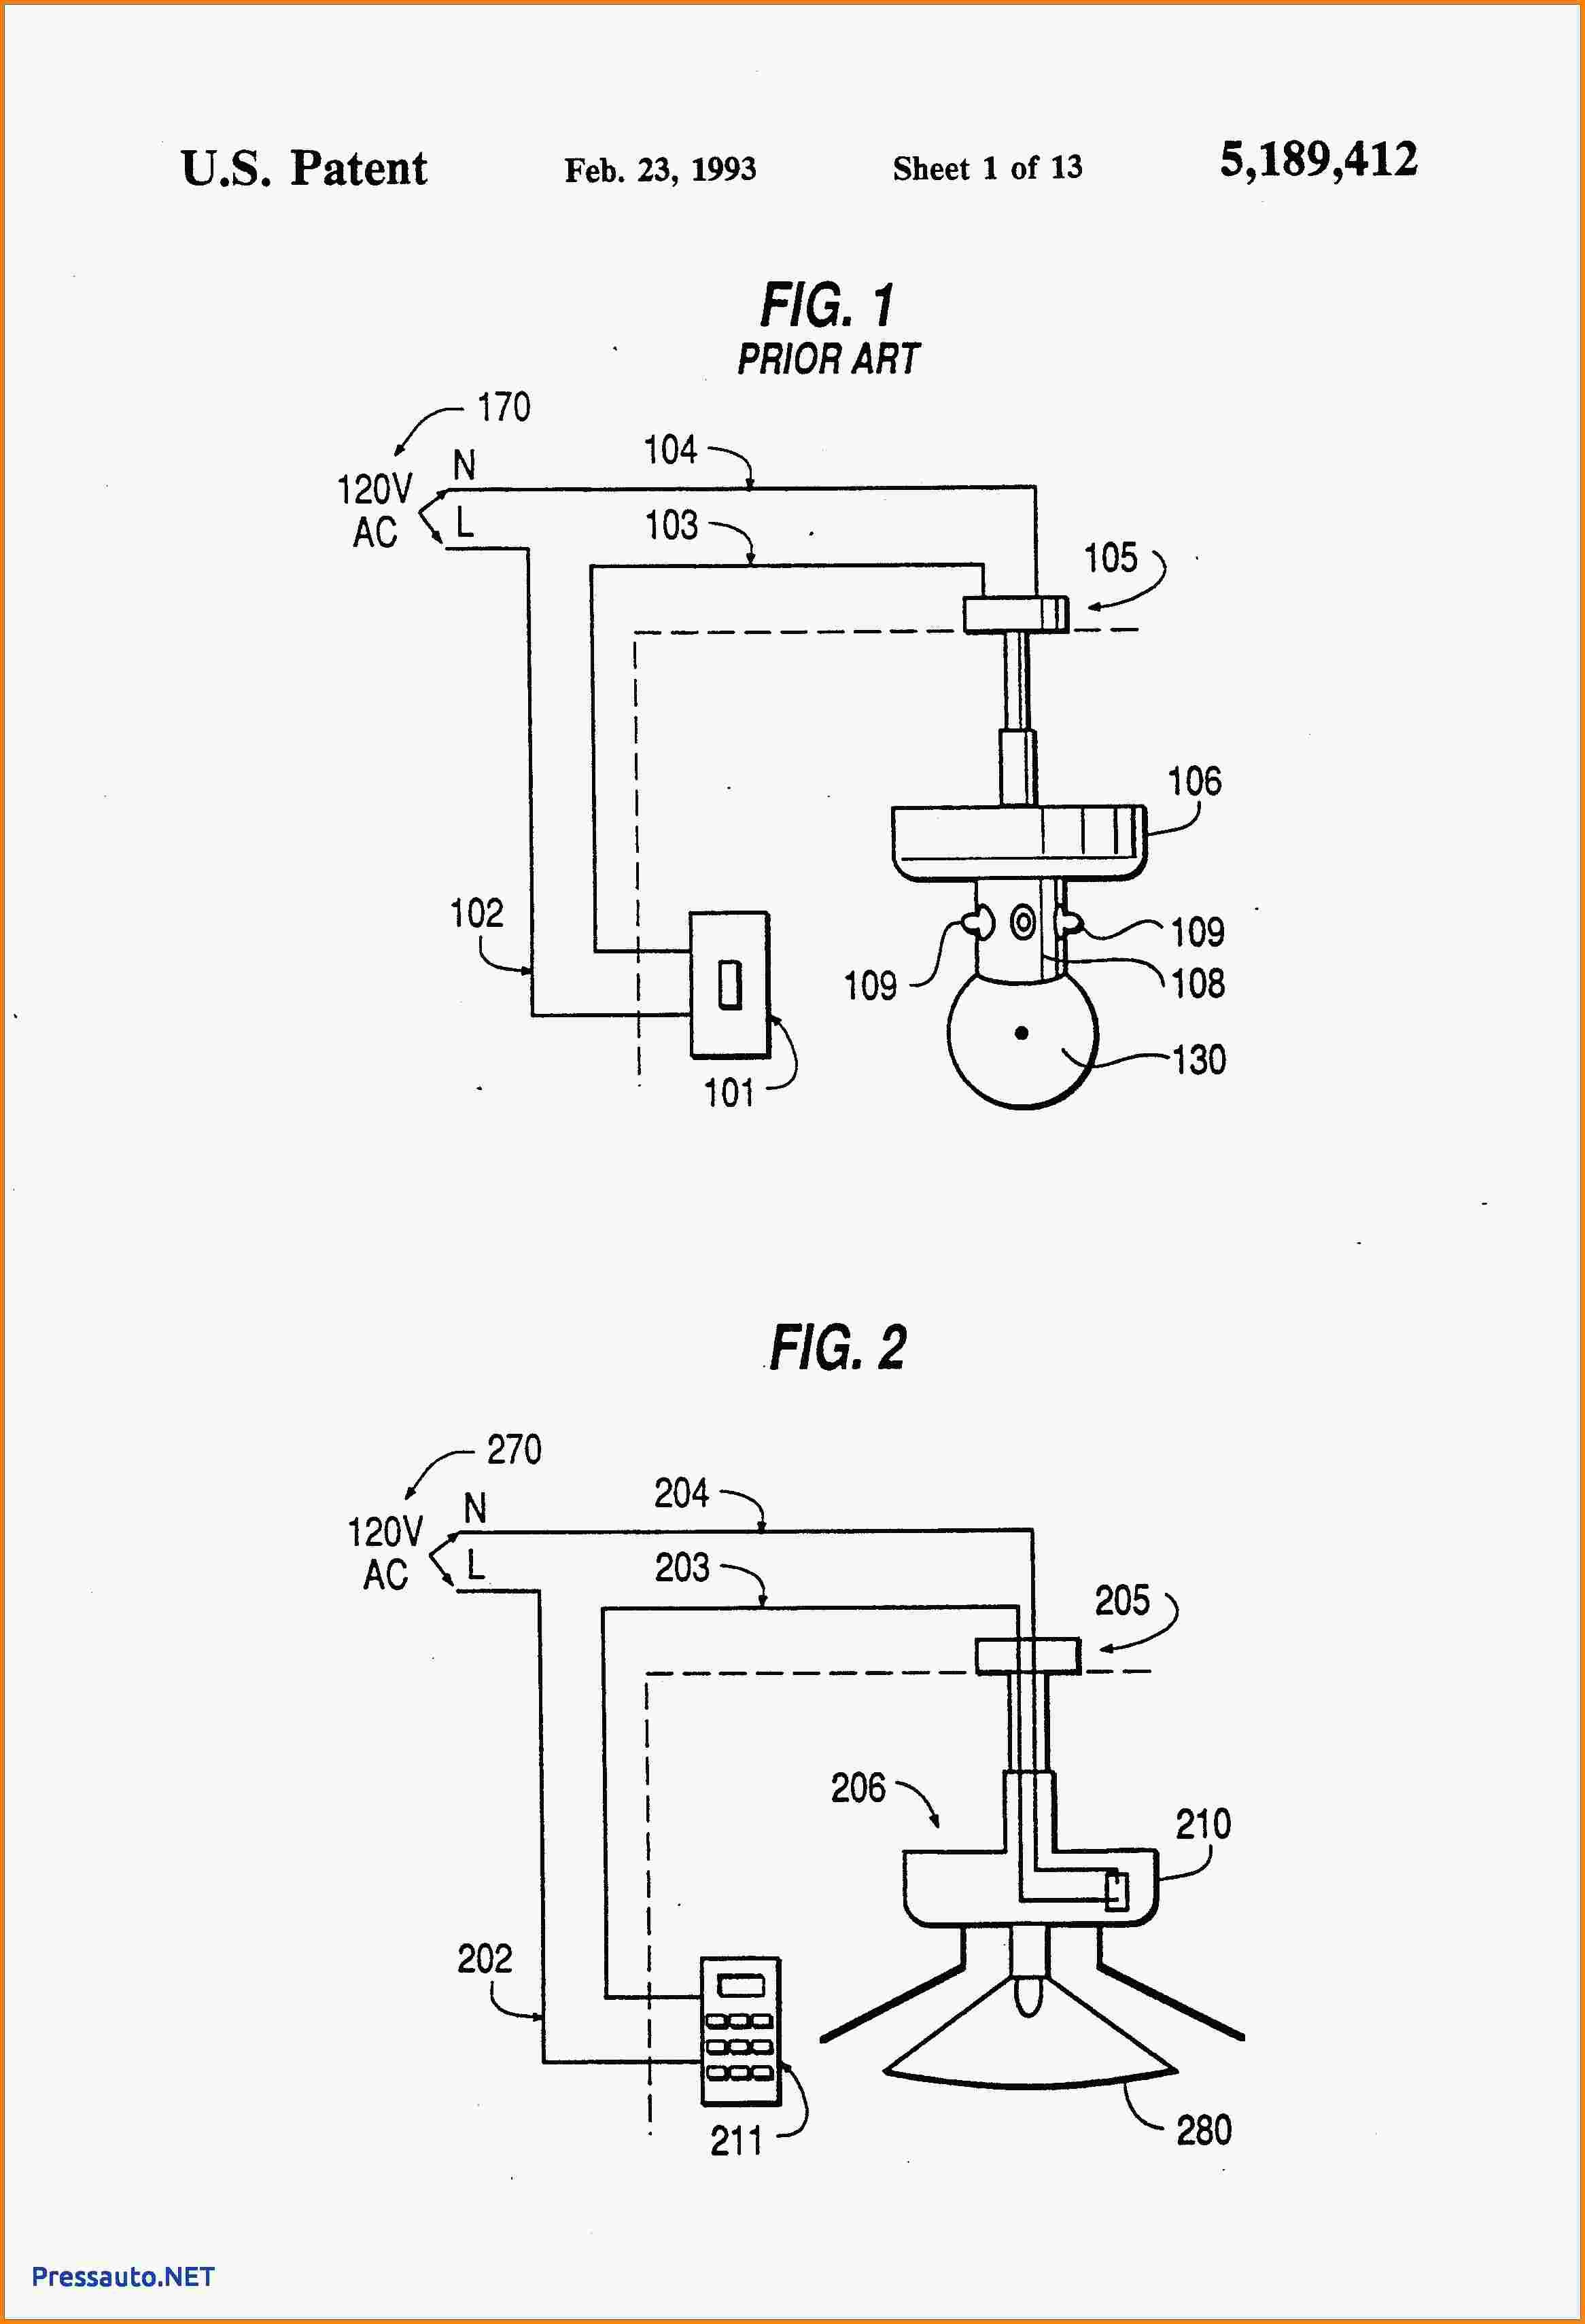 fasco blower motor wiring diagram Collection-Wiring Diagram For Fasco Blower Motor New Condenser Fan Motor Wiring Wiring Diagram 20-g